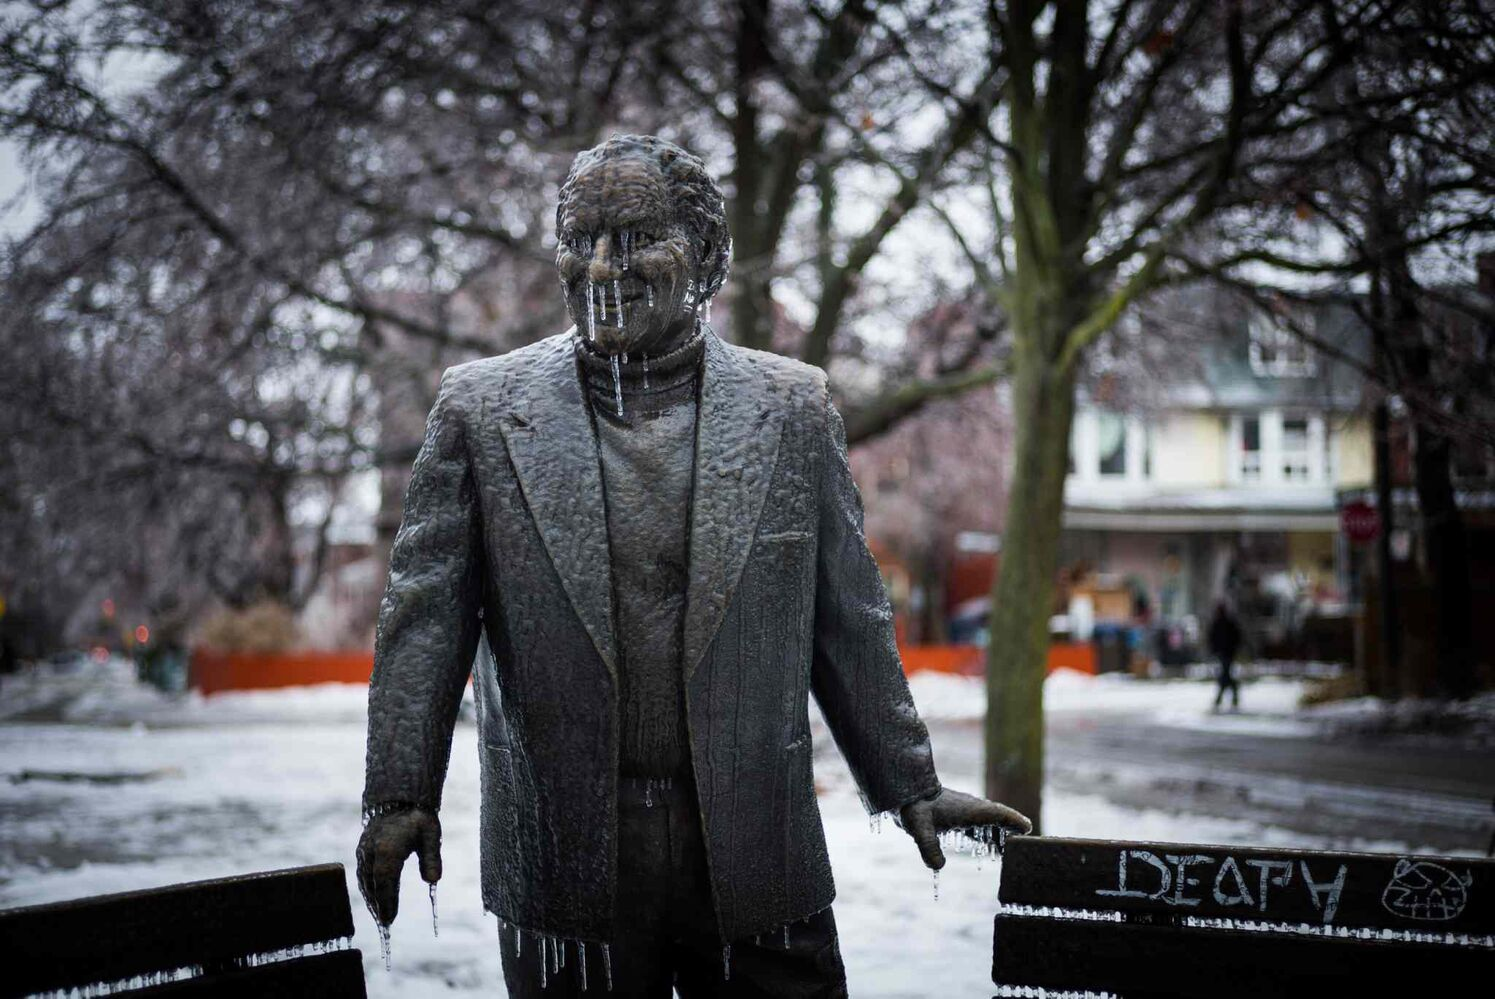 An ice-covered statue of Al Waxman is seen in Toronto's Kensington Market Sunday.